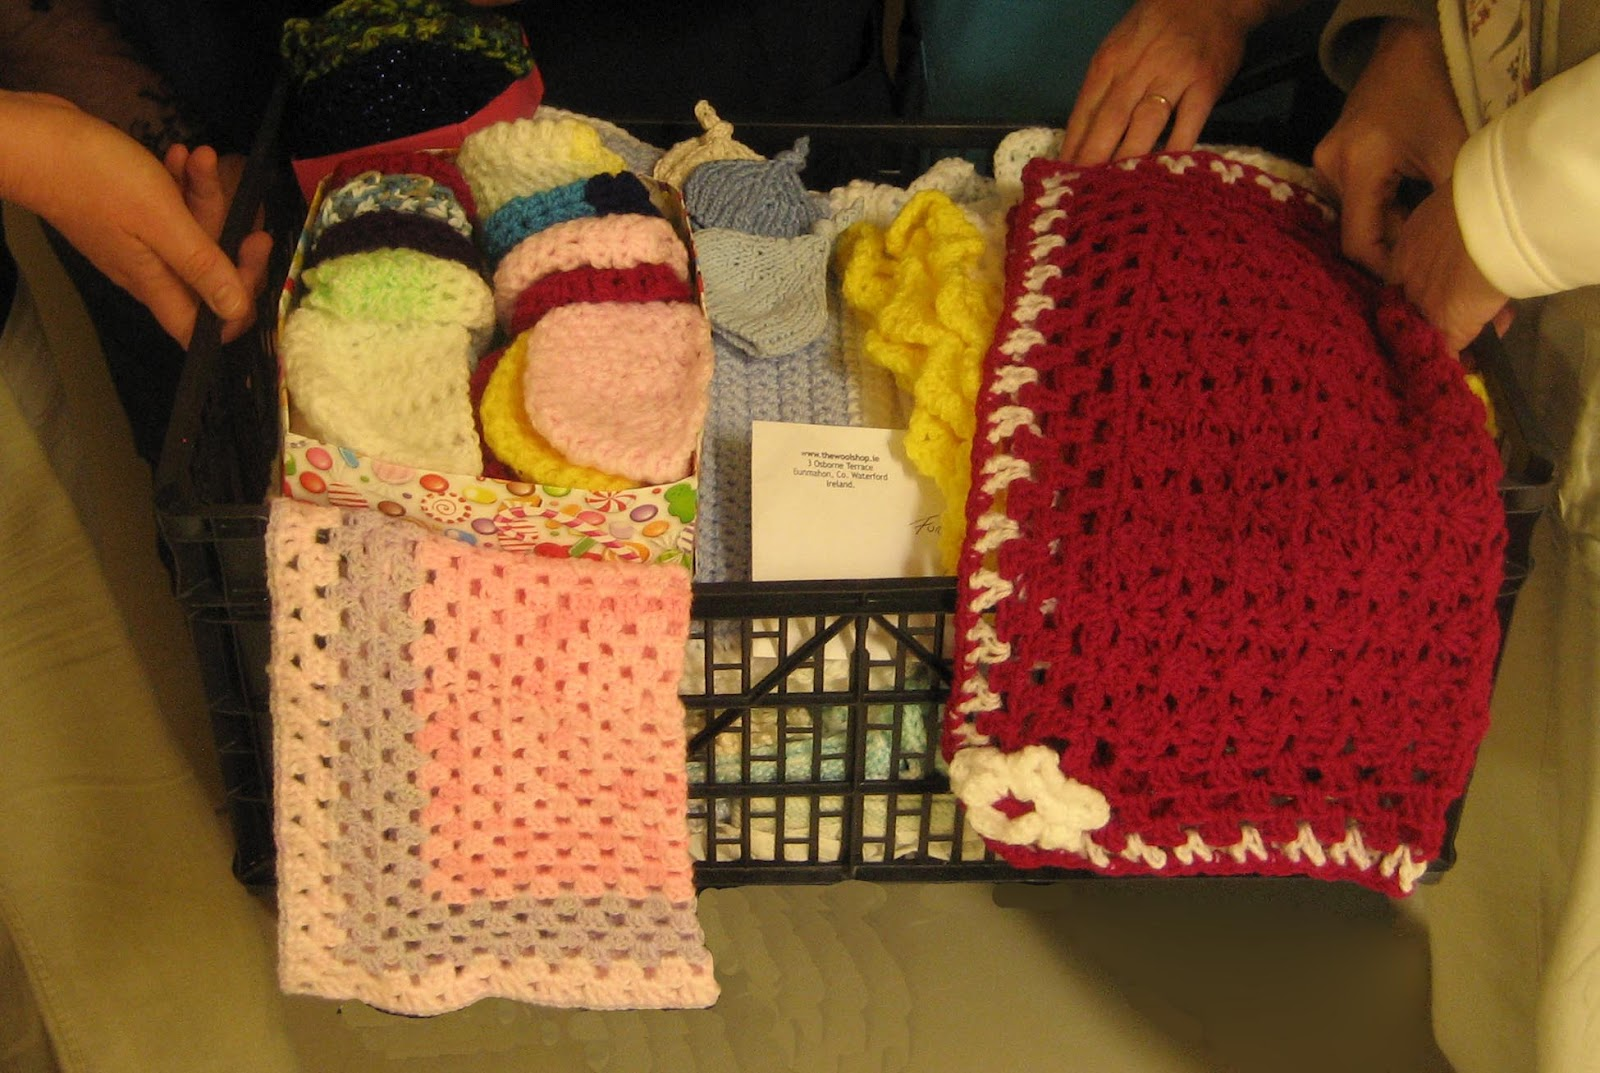 Knitting Patterns For Neonatal Units : The Wool Shop: More Blankets for the Neonatal unit